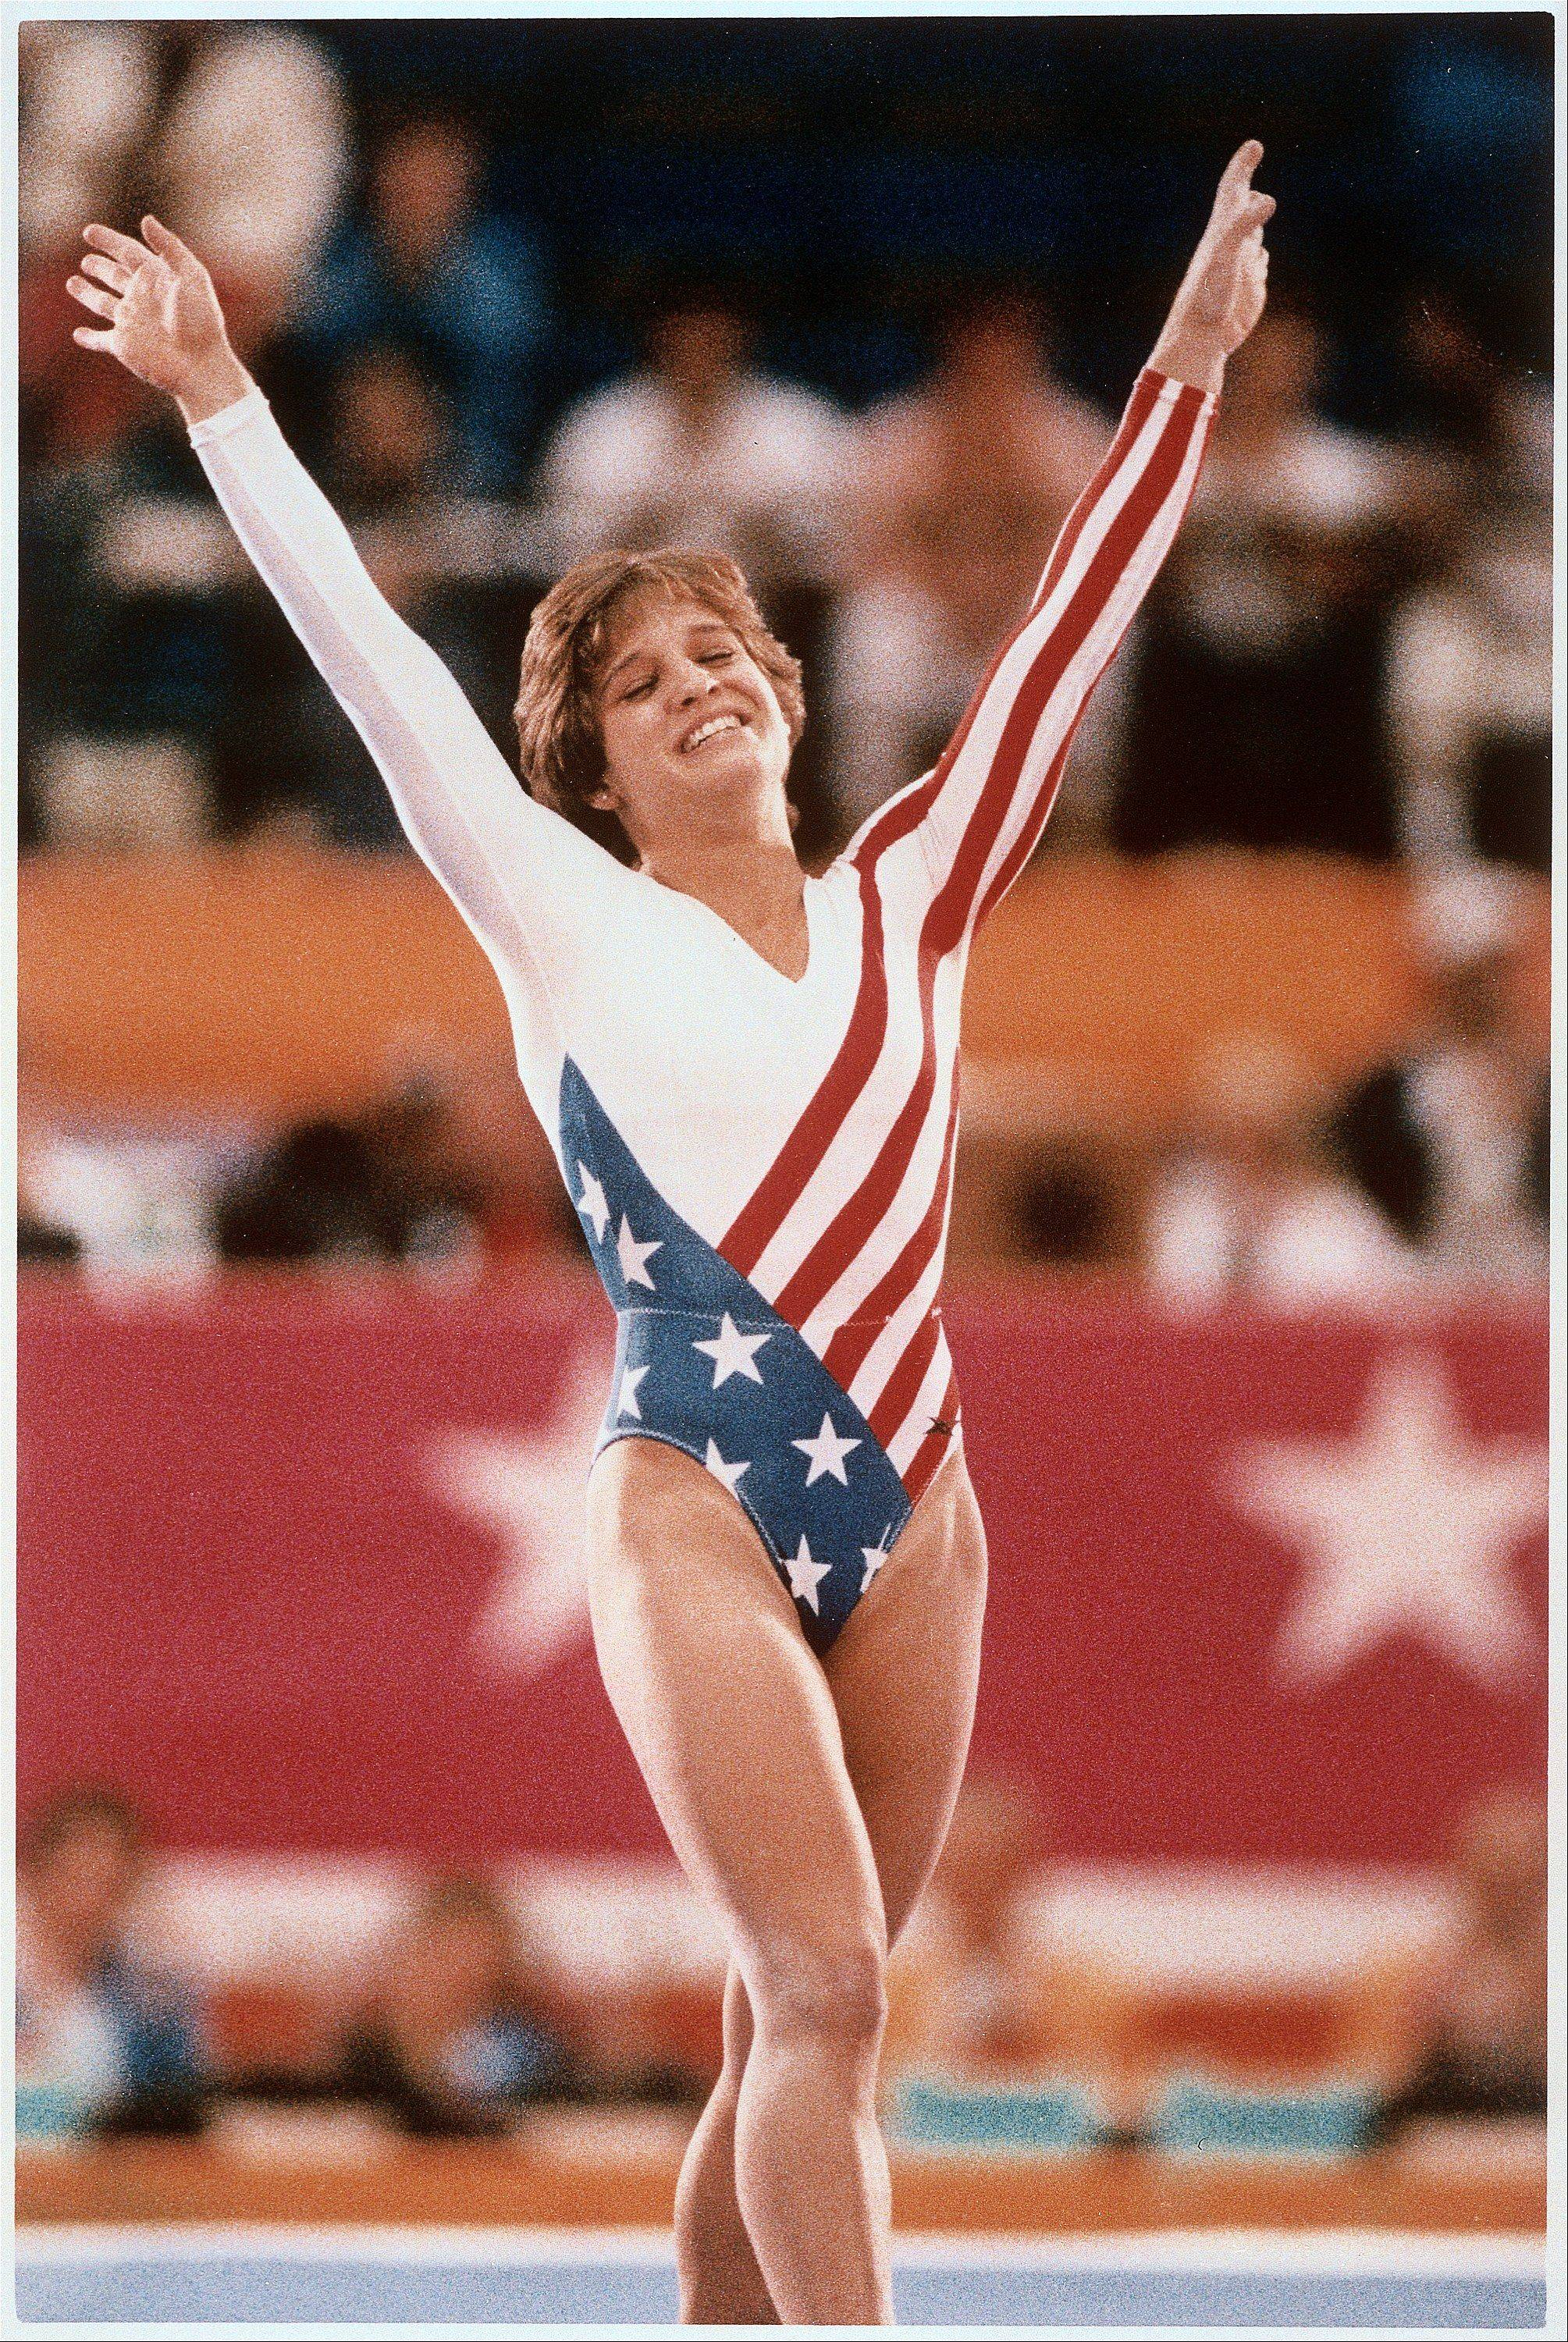 Mary Lou Retton celebrates her balance beam score at the 1984 Olympic Games in Los Angeles on Aug. 3, 1984. Retton, 16, became the first American woman ever to win an individual Olympic gold medal in gymnastics.